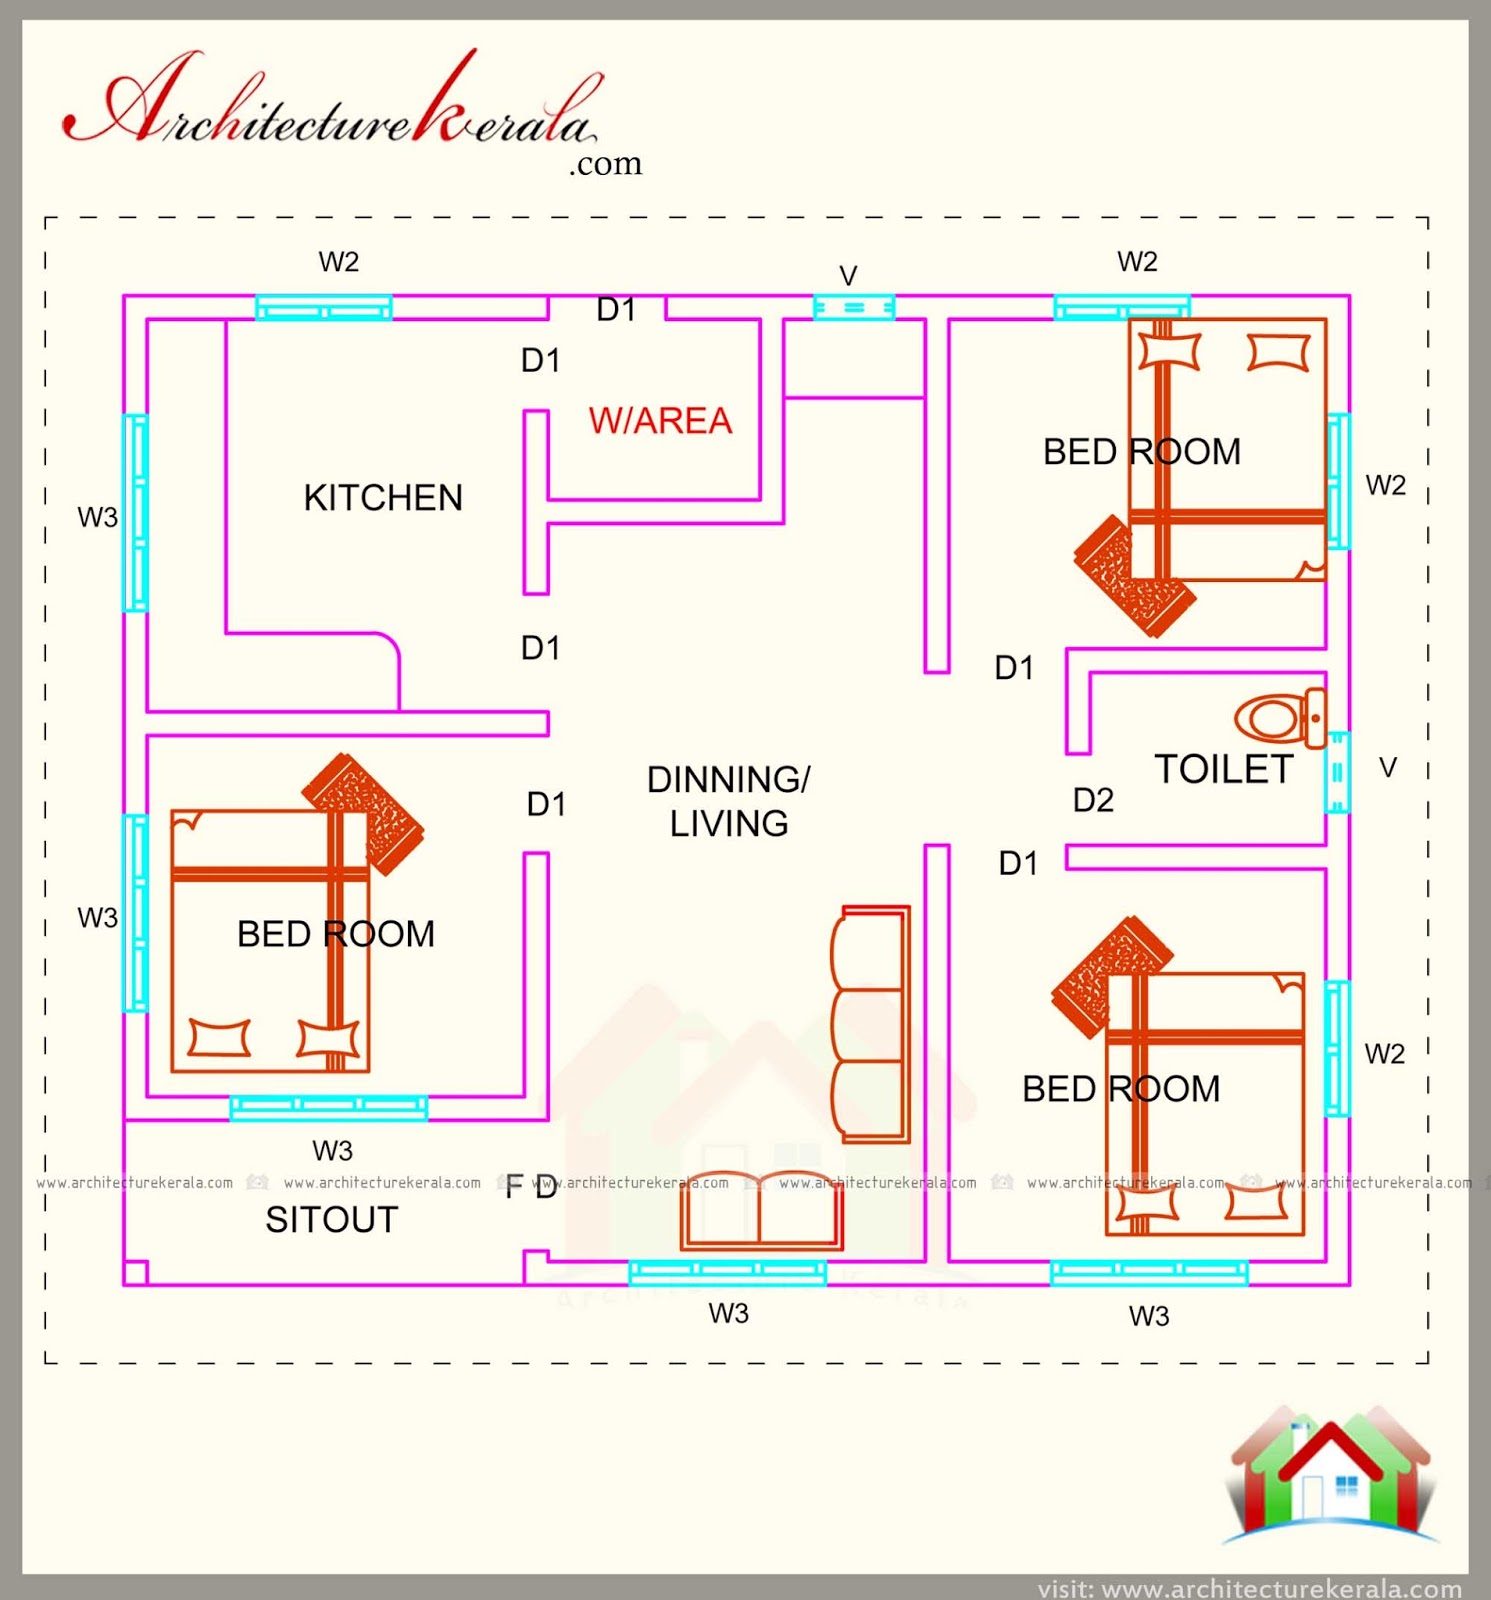 760 square feet 3 bedroom house plan architecture kerala for Houde plans